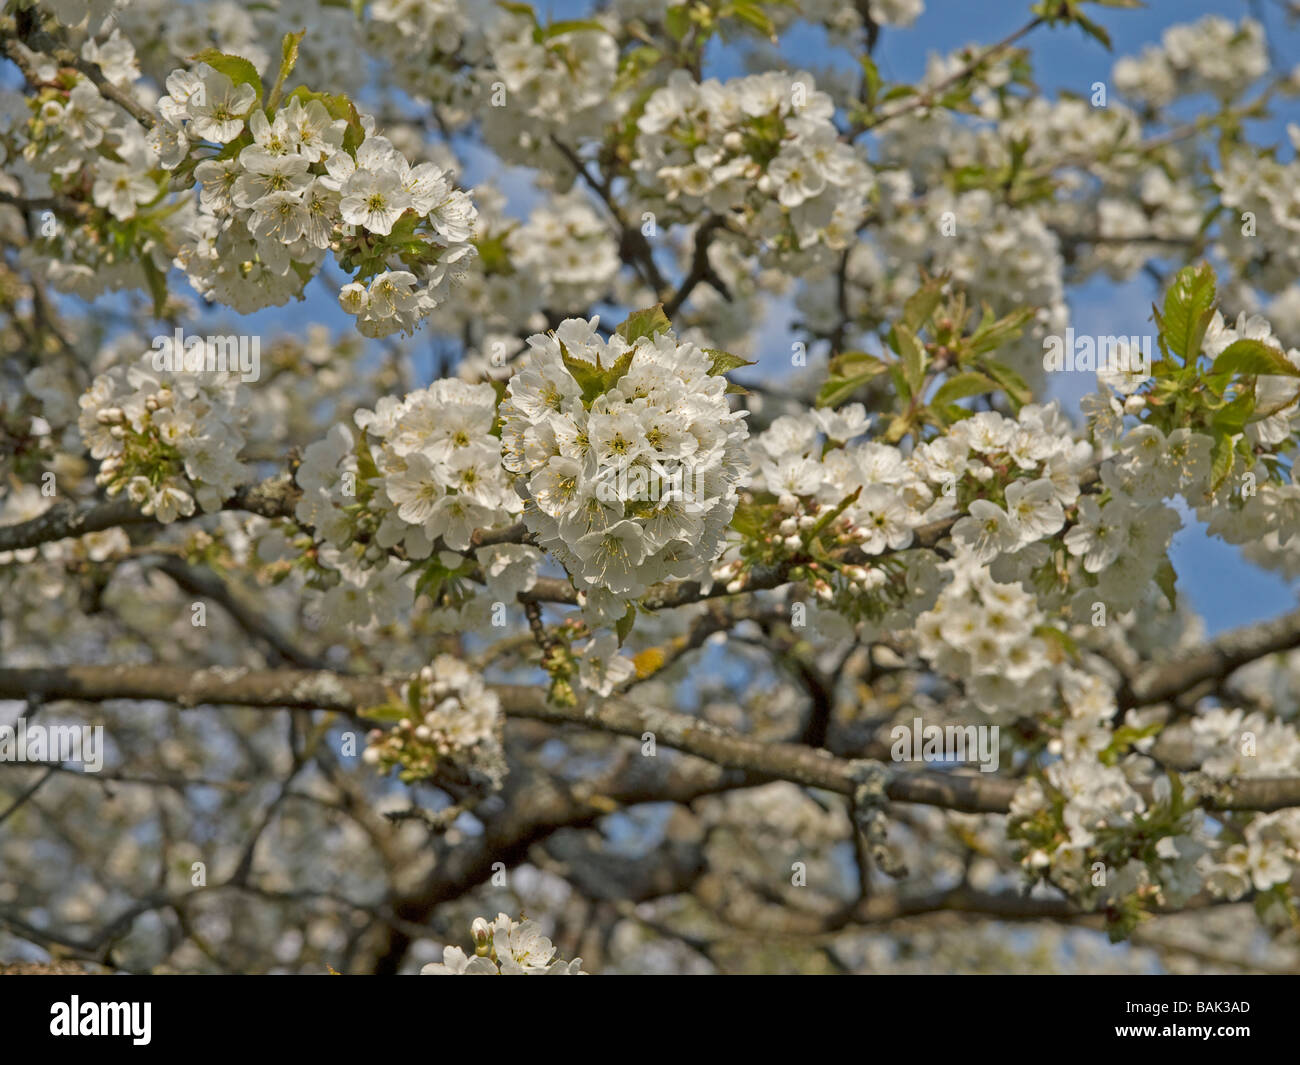 Flowering cherry tree with white blossoms near by weienohe bavaria flowering cherry tree with white blossoms near by weienohe bavaria upper franconia germany mightylinksfo